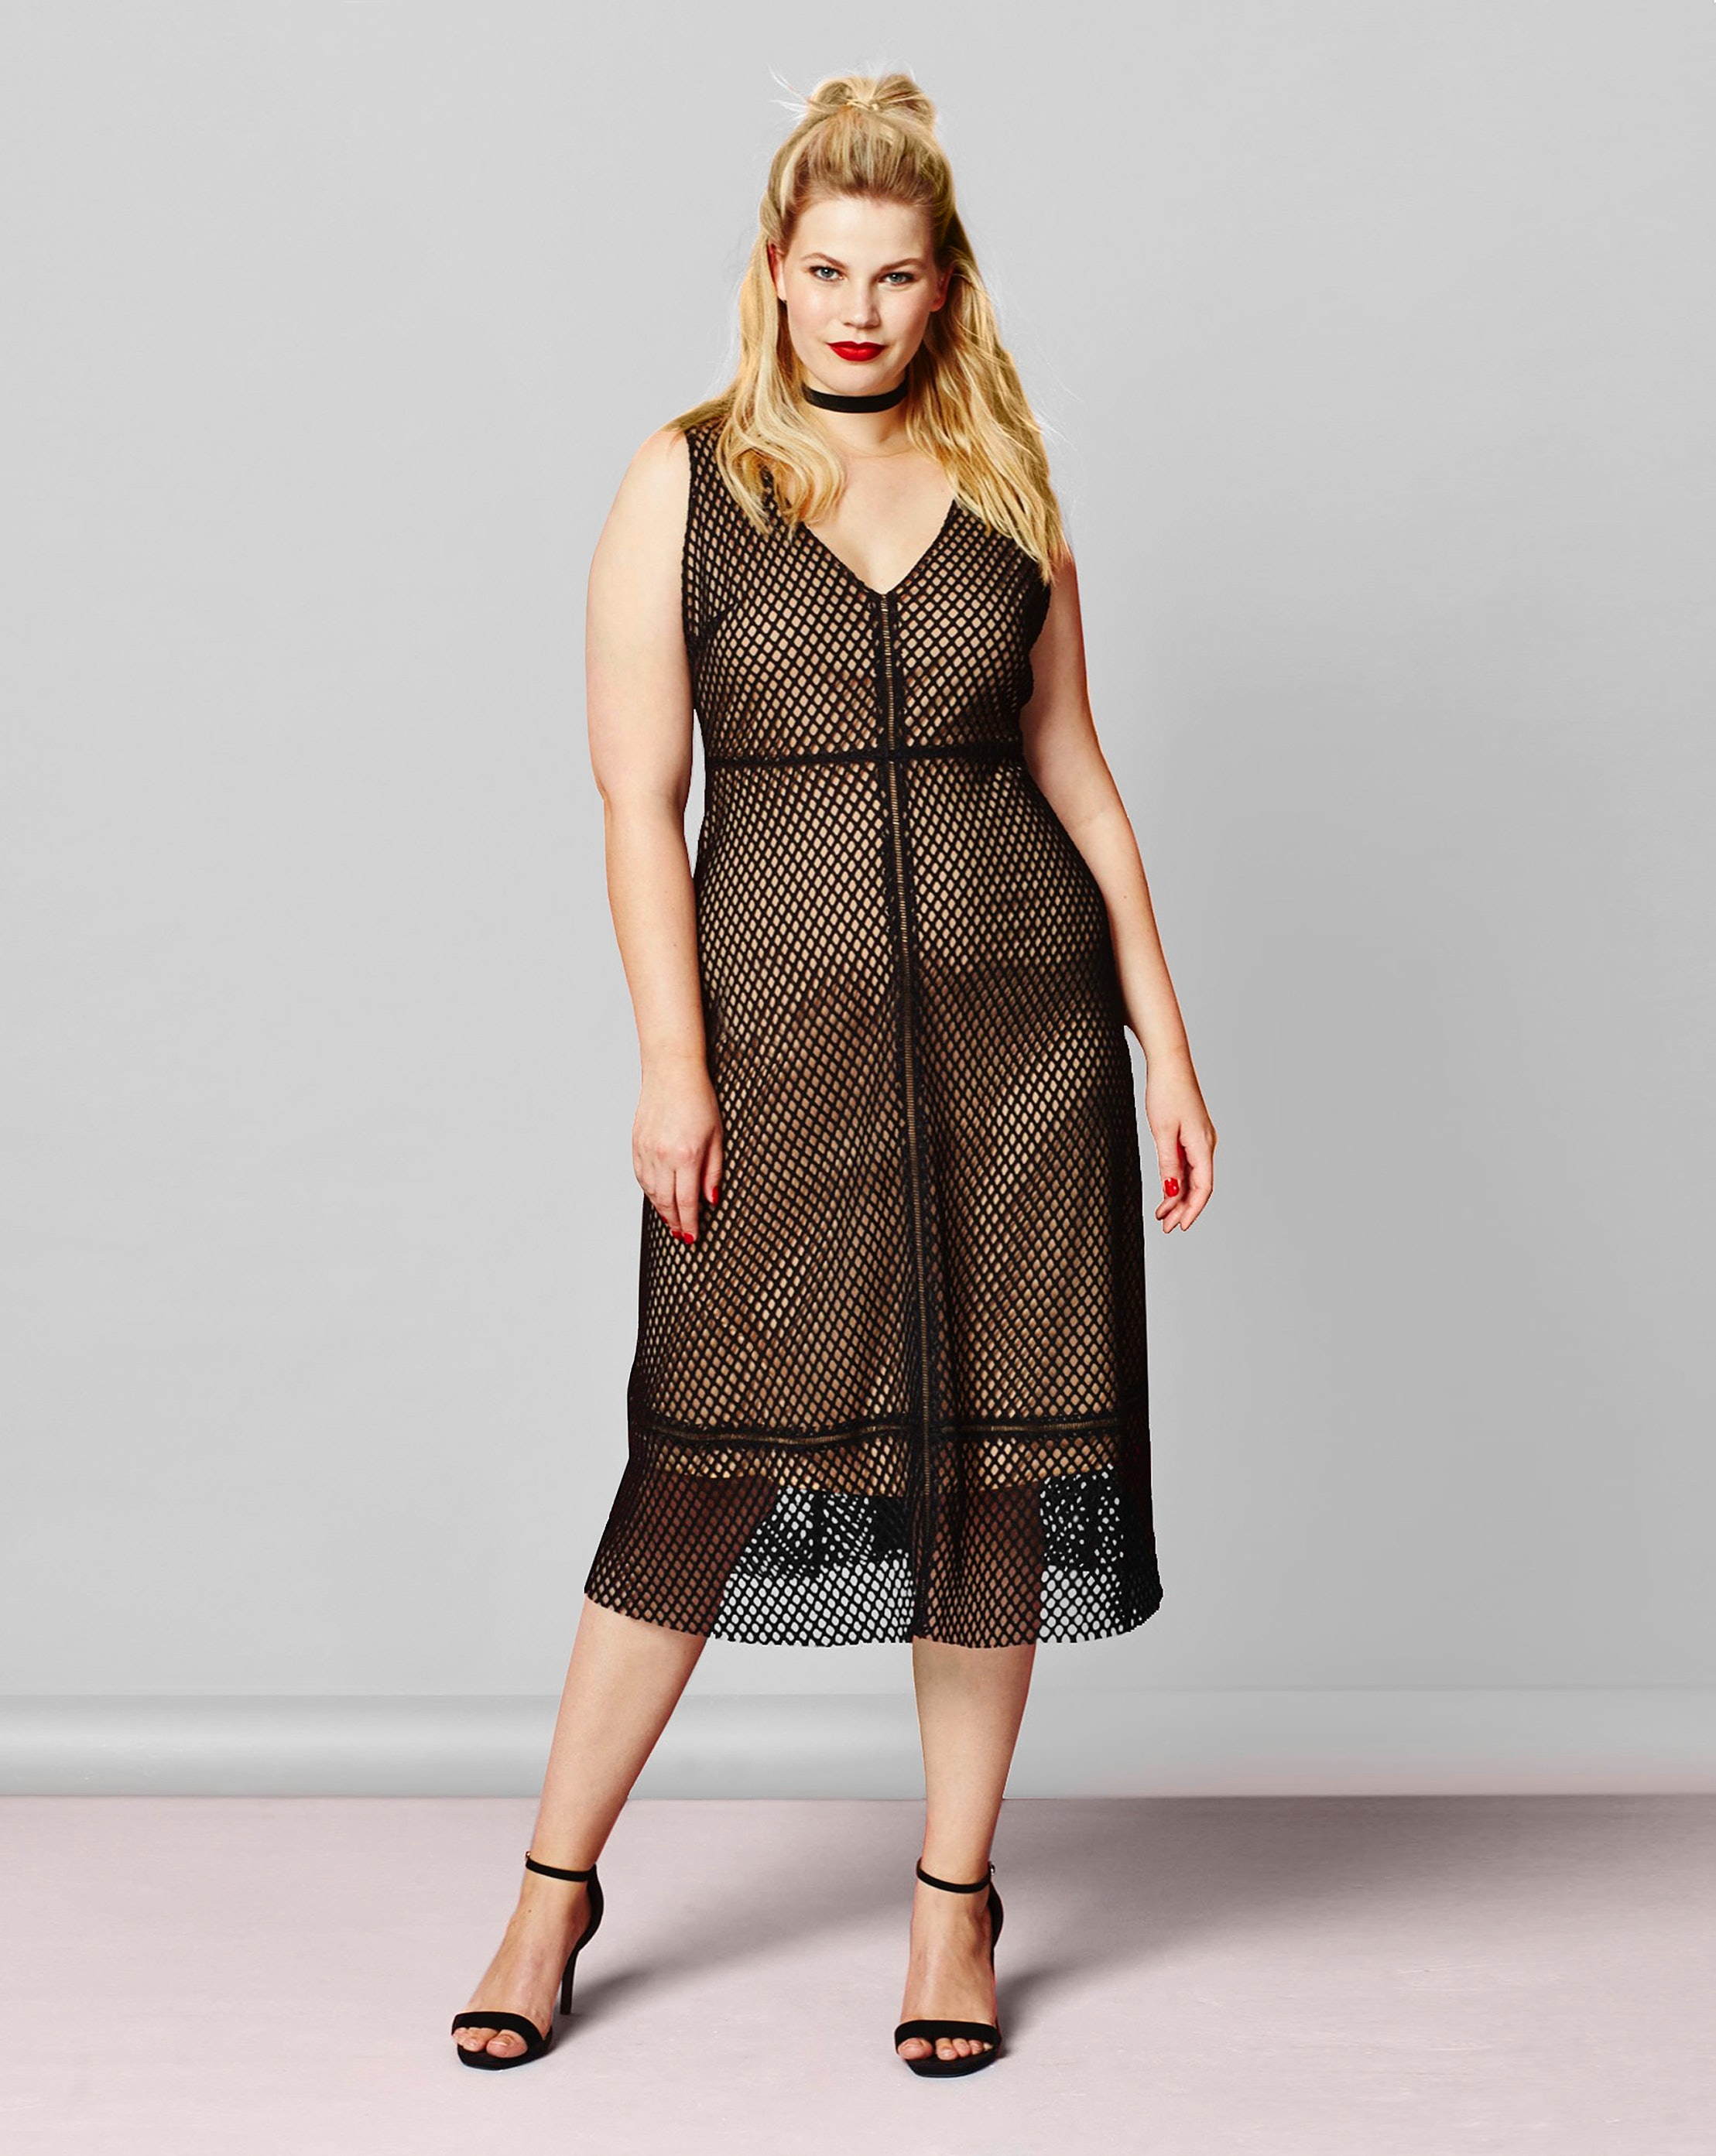 927719d7f804f Where To Buy Plus Size Clothes In Sizes 3X & Above — PHOTOS